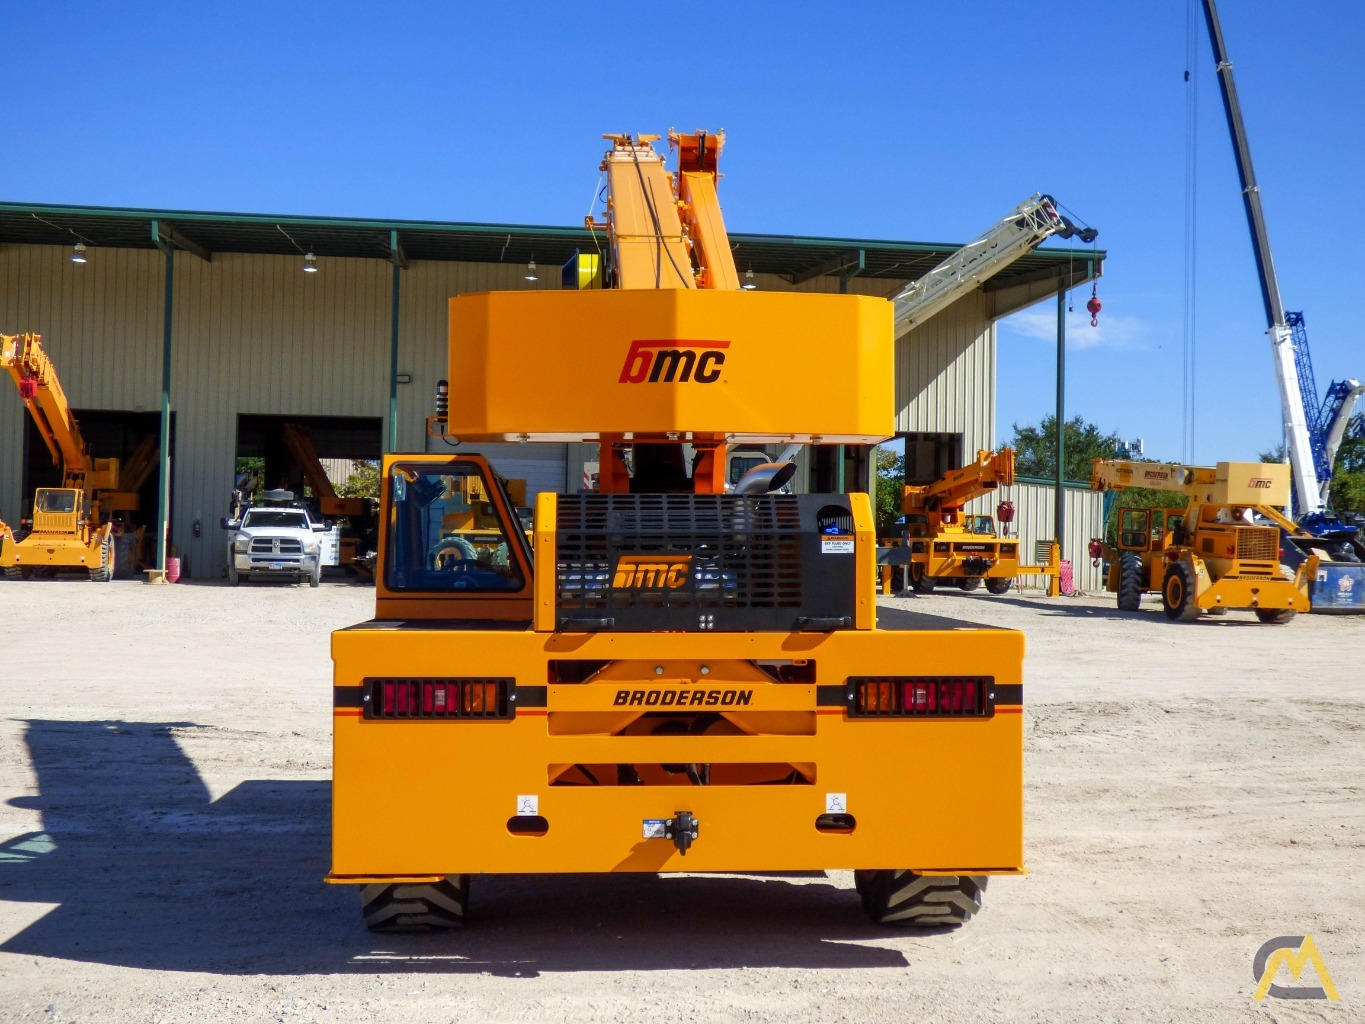 Broderson IC-200-3J 15-ton Available Immediately Carry Deck Industrial Crane 5